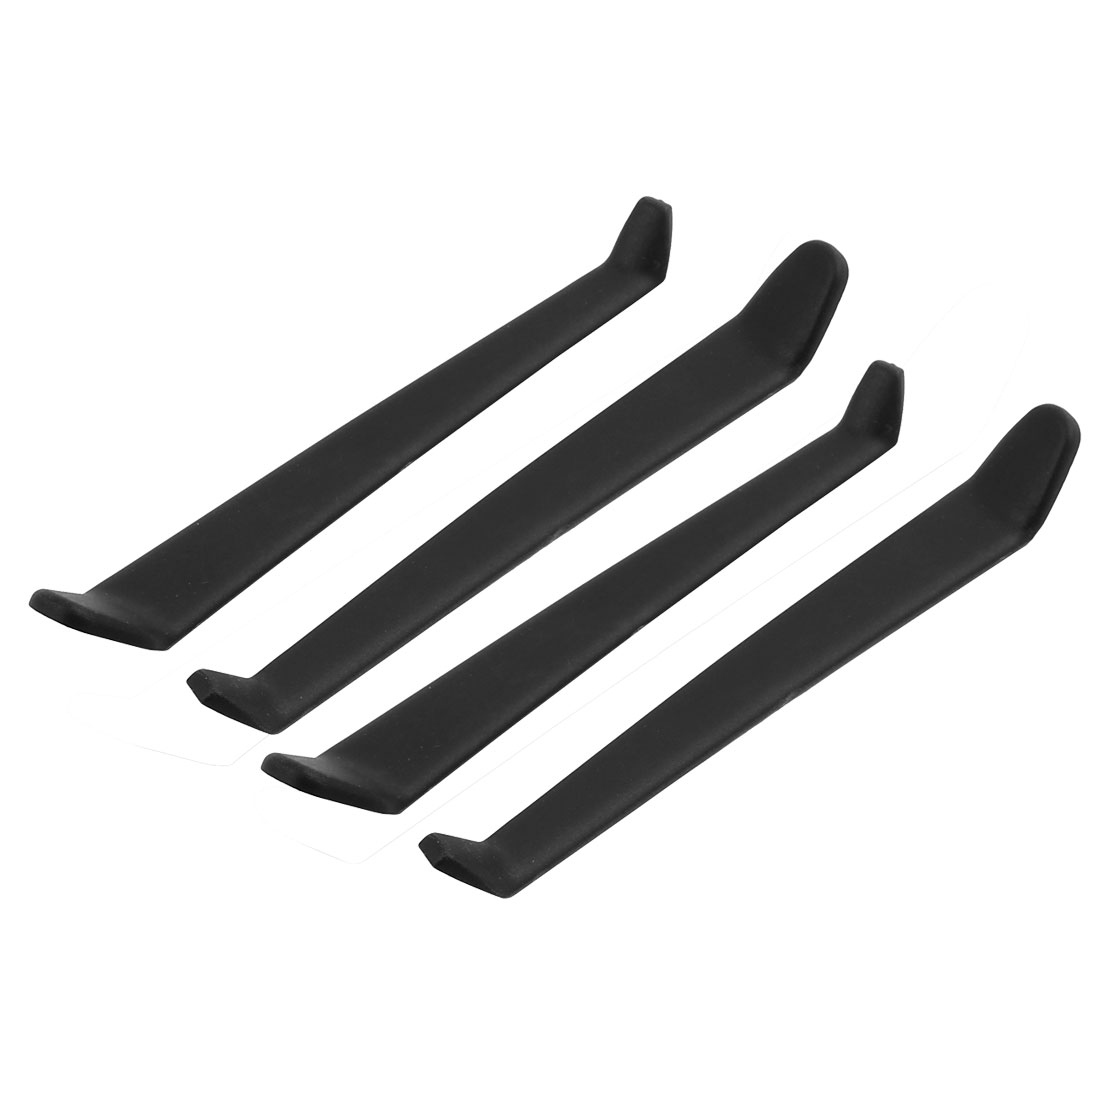 2pairs RC Helicopter Spare Parts Plastic Undercarriage Landing Skid 150mm Length